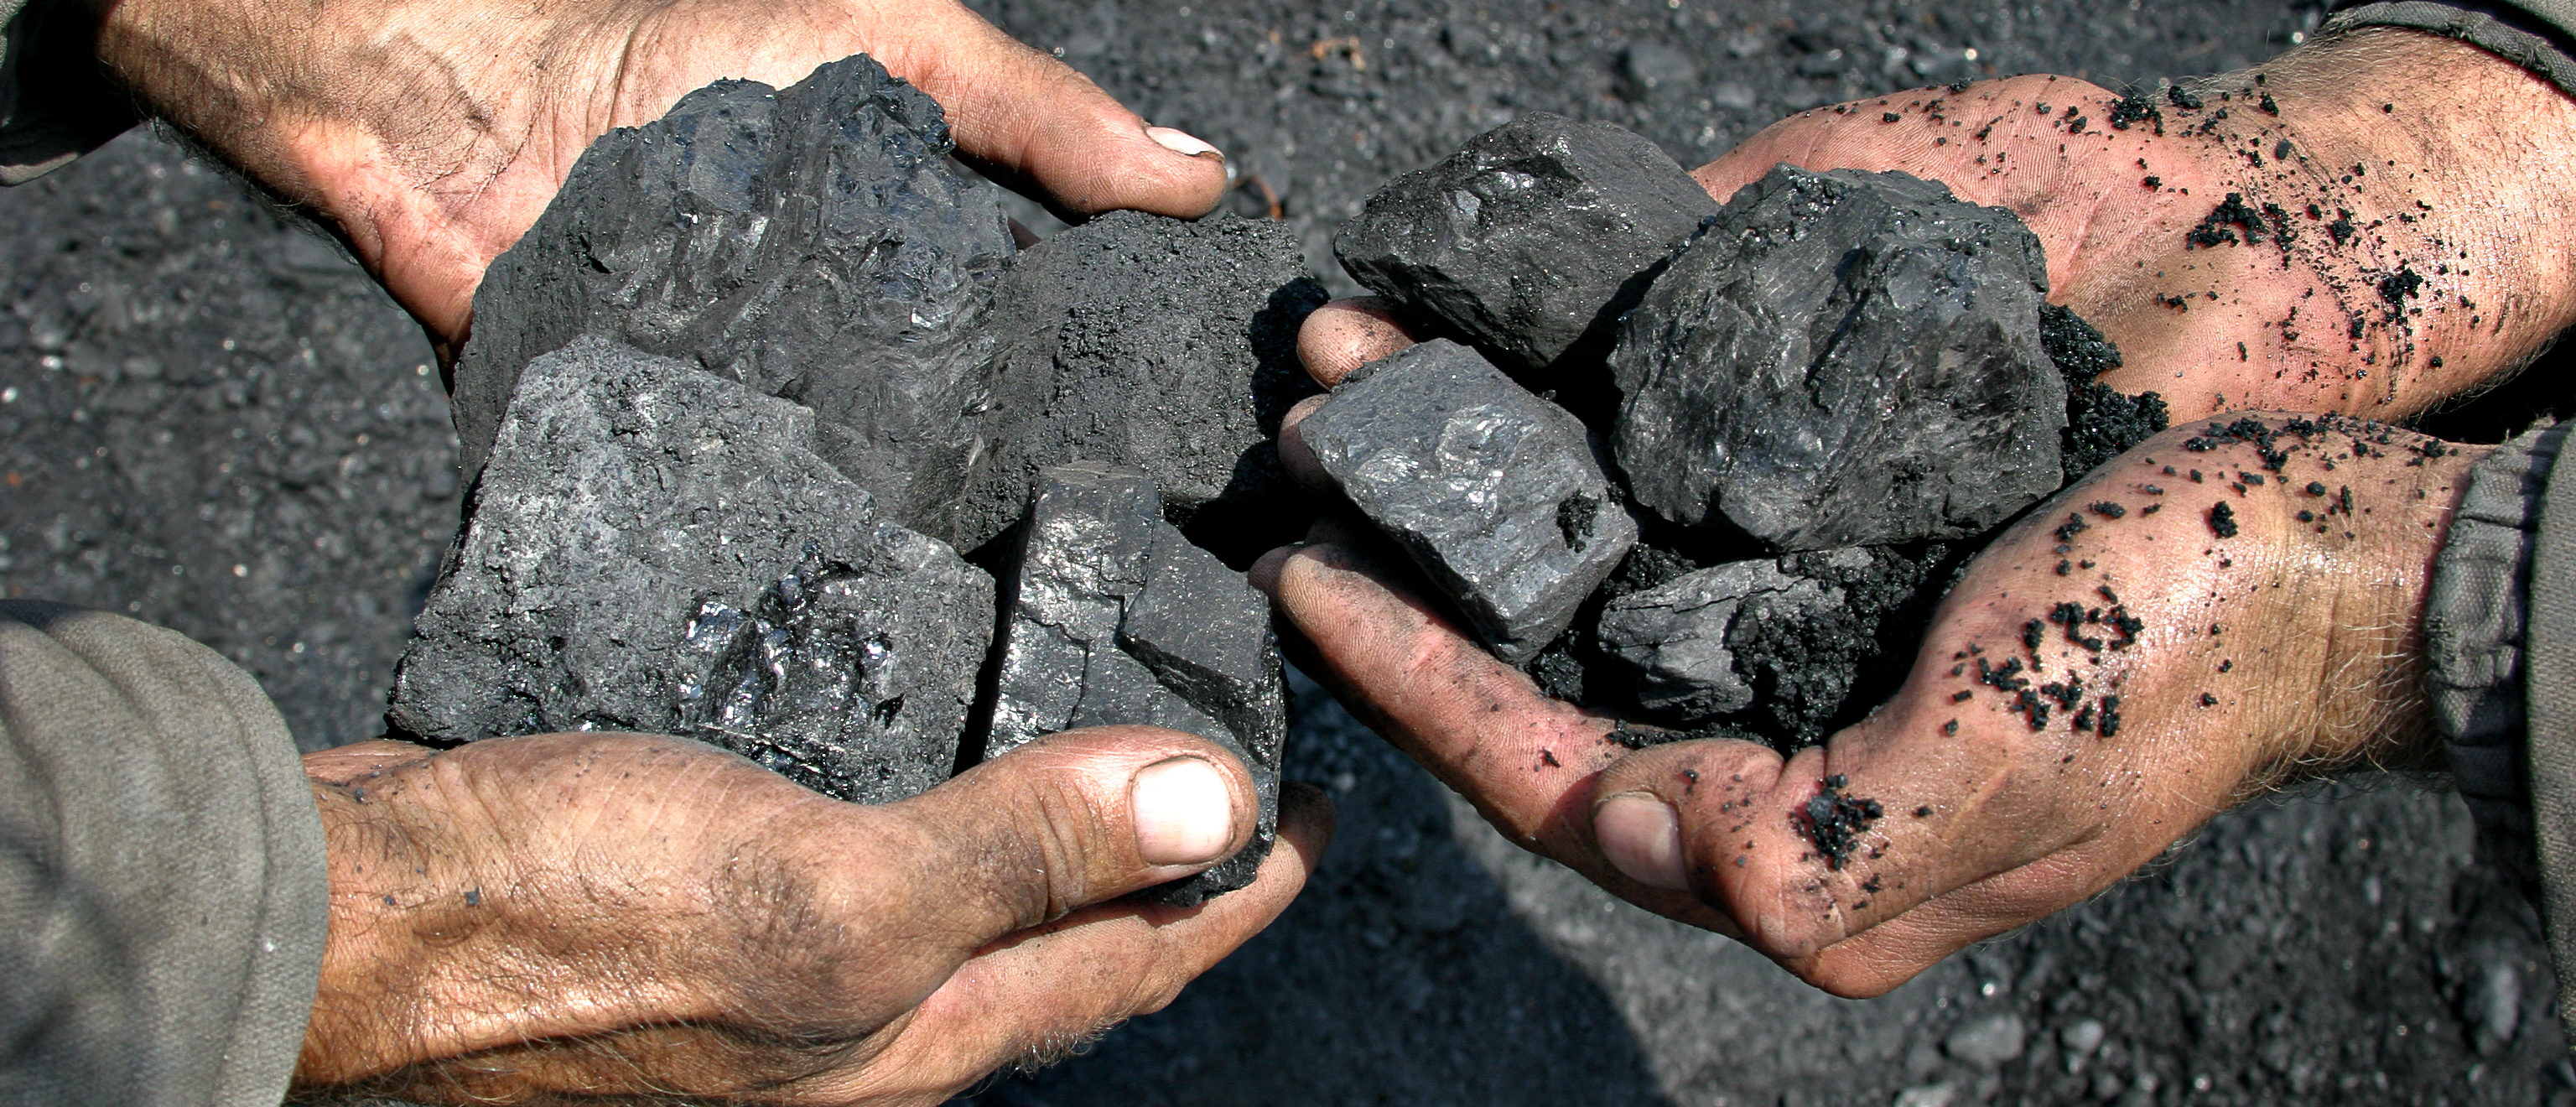 Coal in the hands of miners. (Shutterstock)